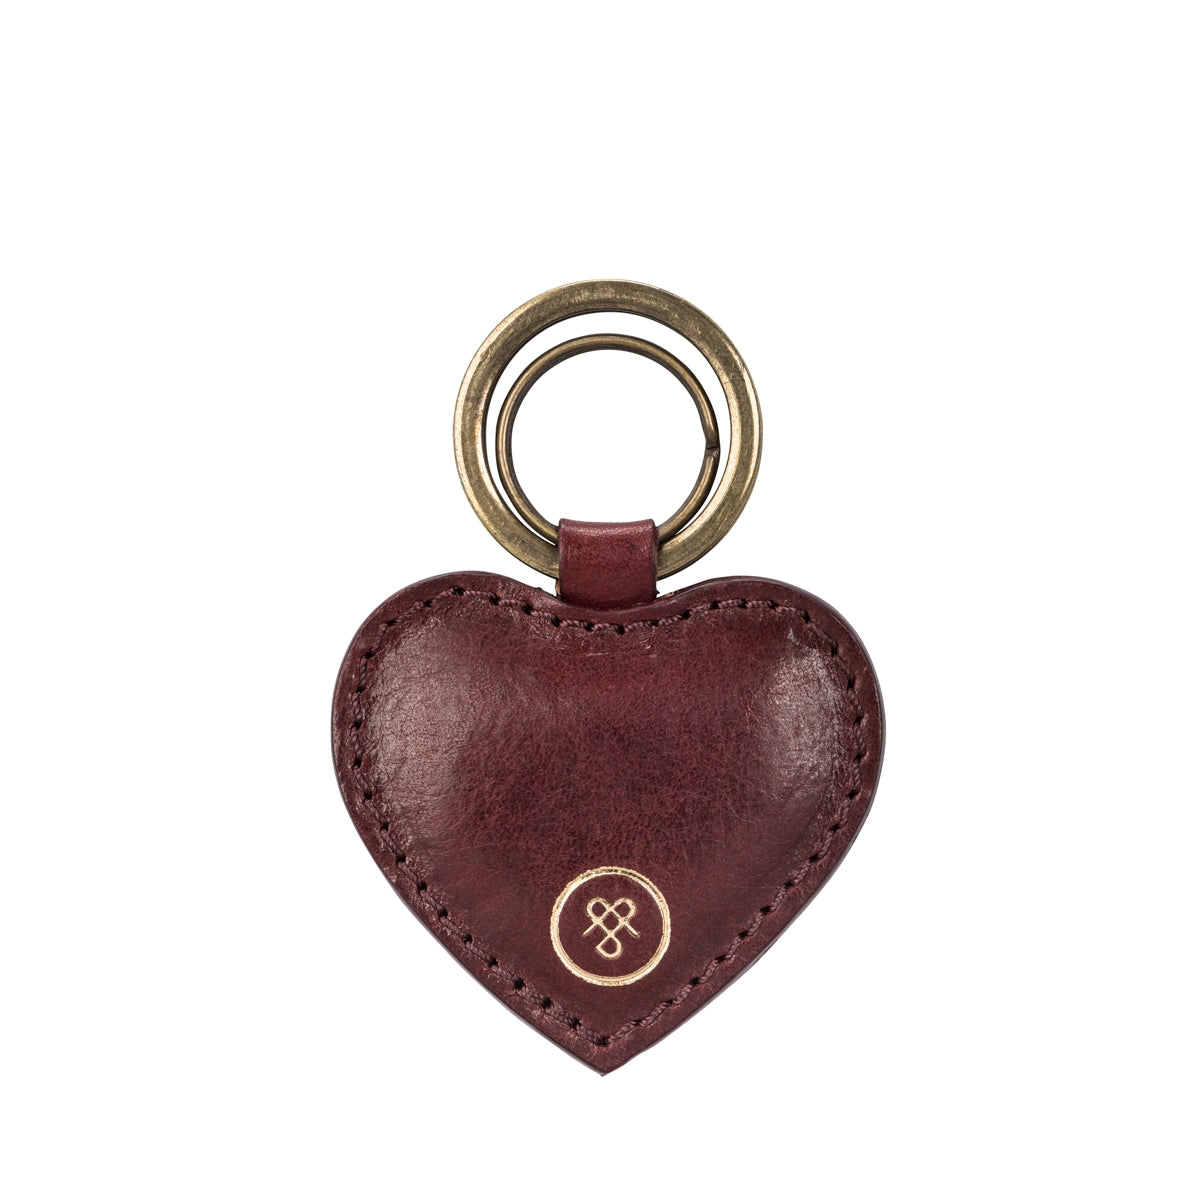 Image 1 of the 'Mimi' Leather Heart Key Ring